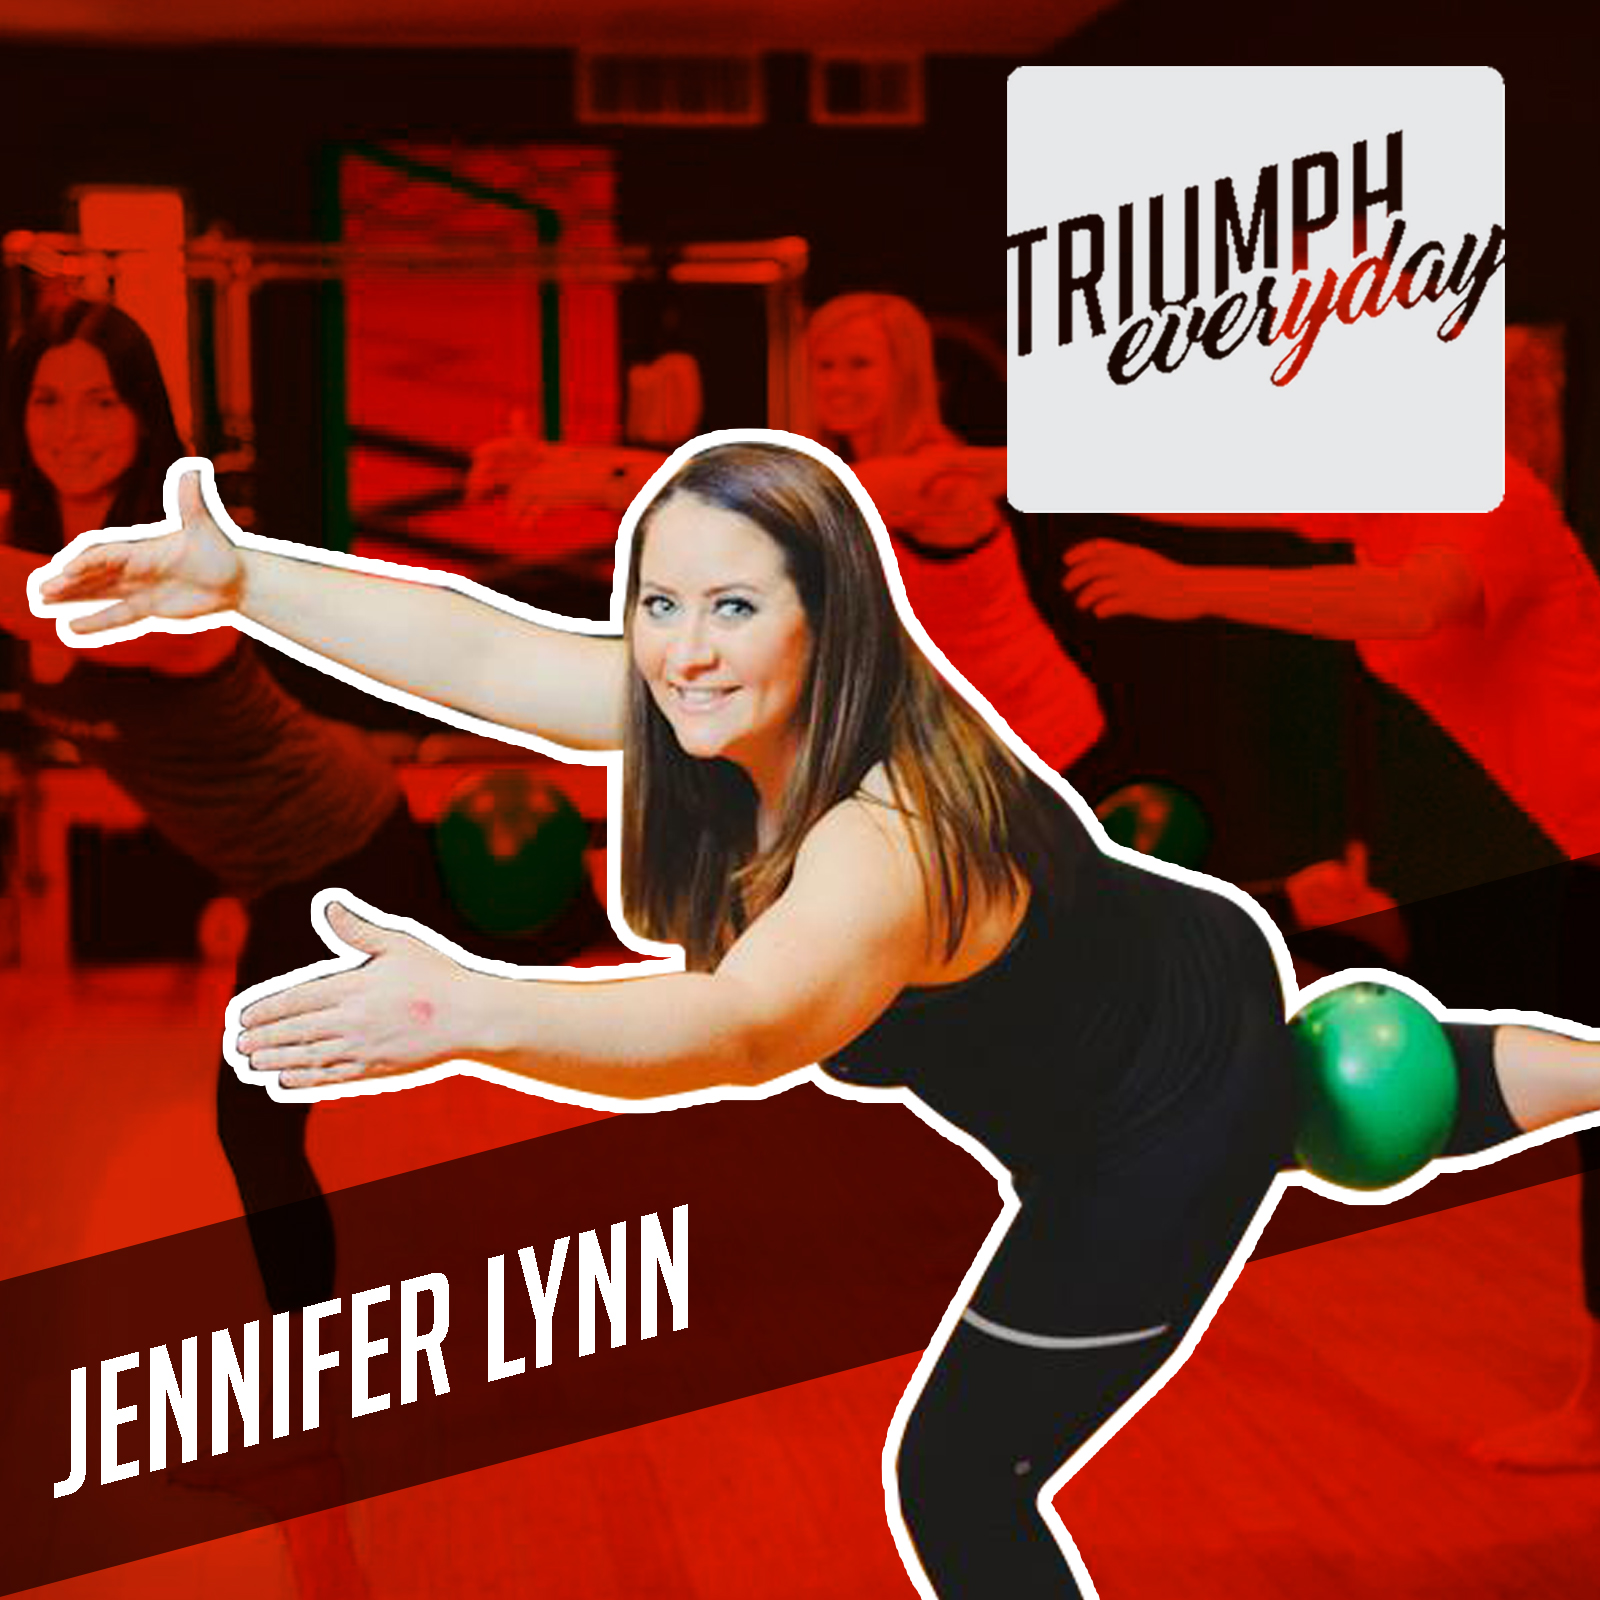 Triumph Everyday jennifer Soundcloud